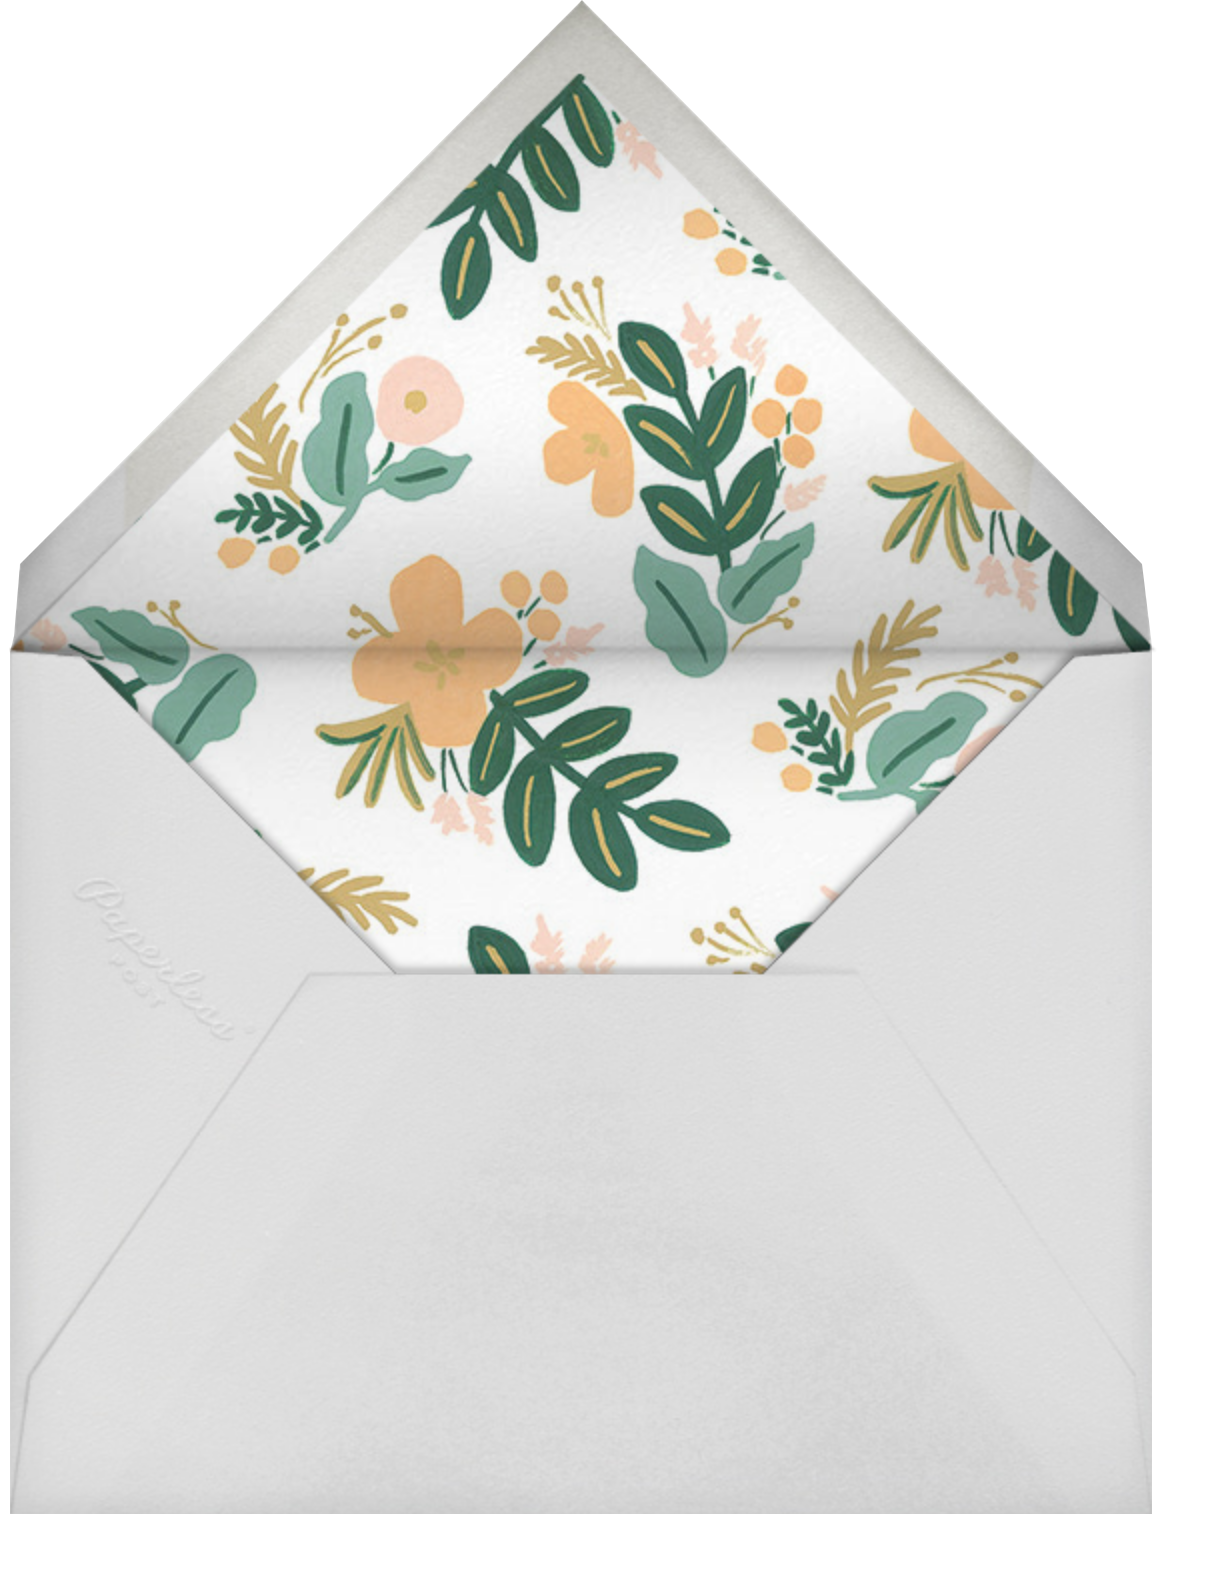 Festive Fauna - Rifle Paper Co. - 100 day celebrations - envelope back